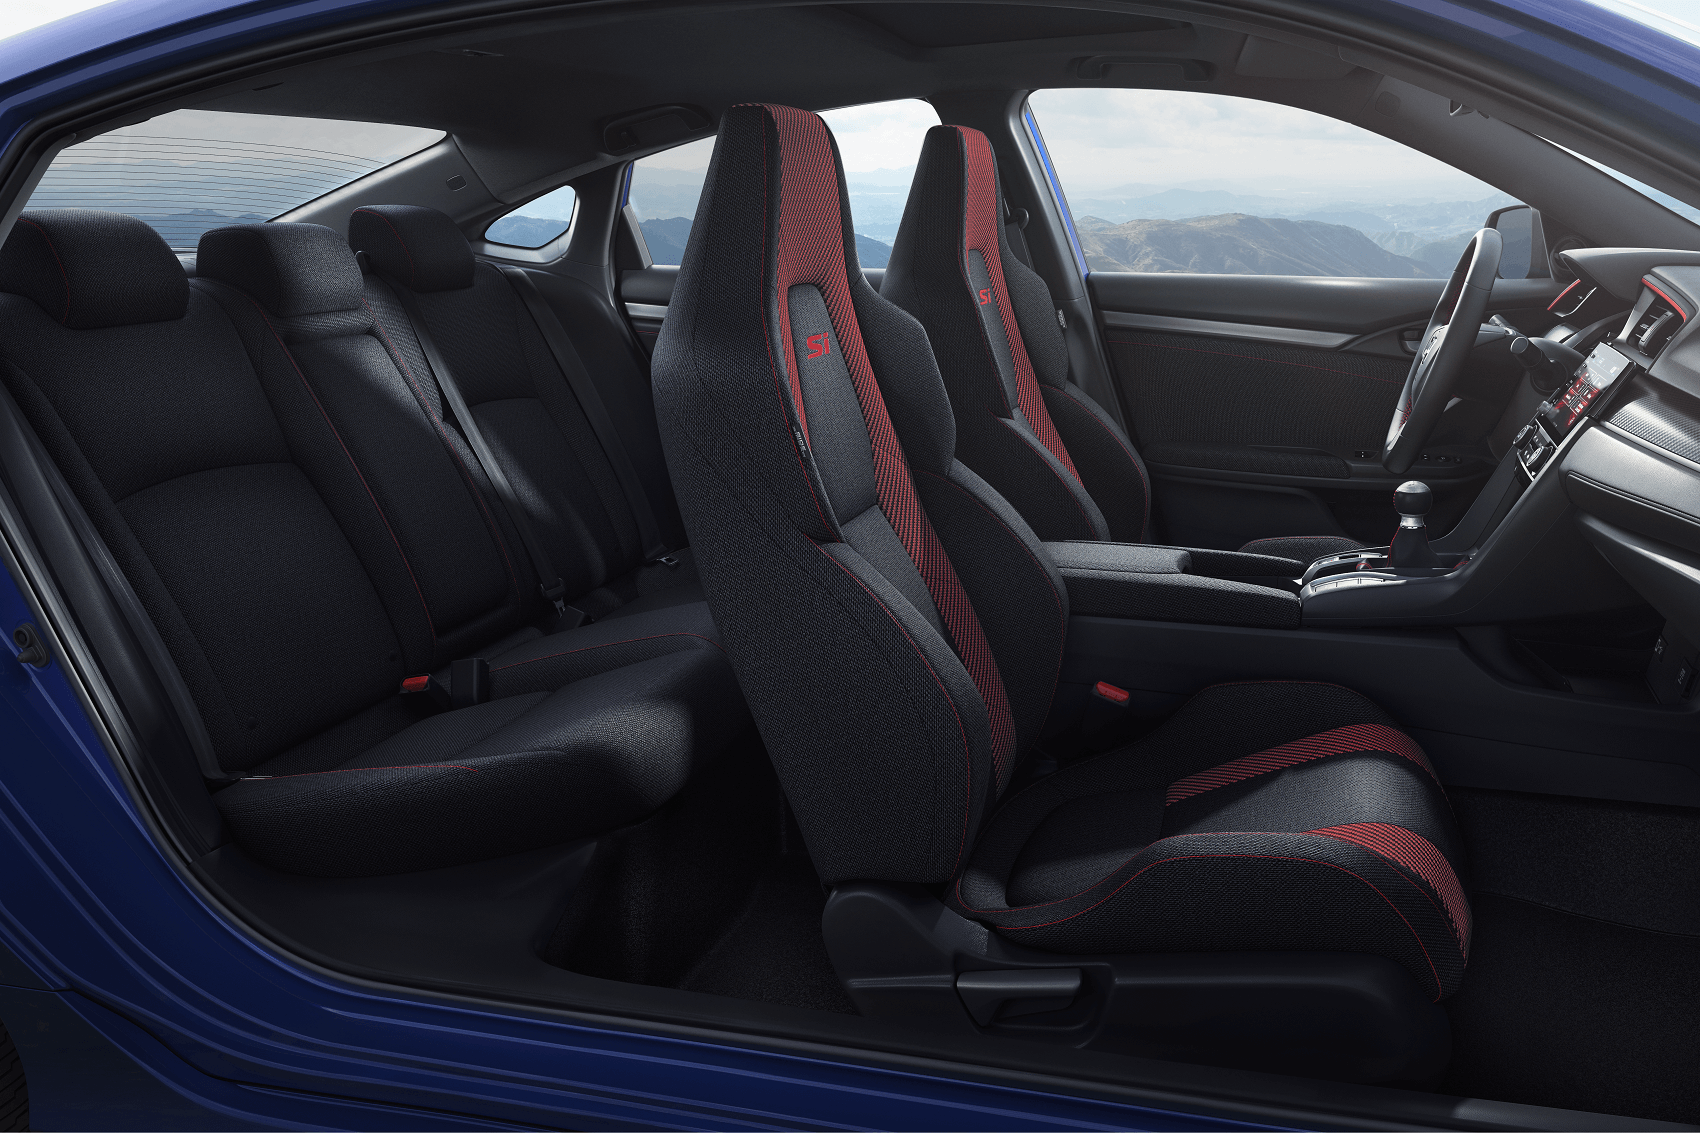 2020 Honda Civic Interior Seats